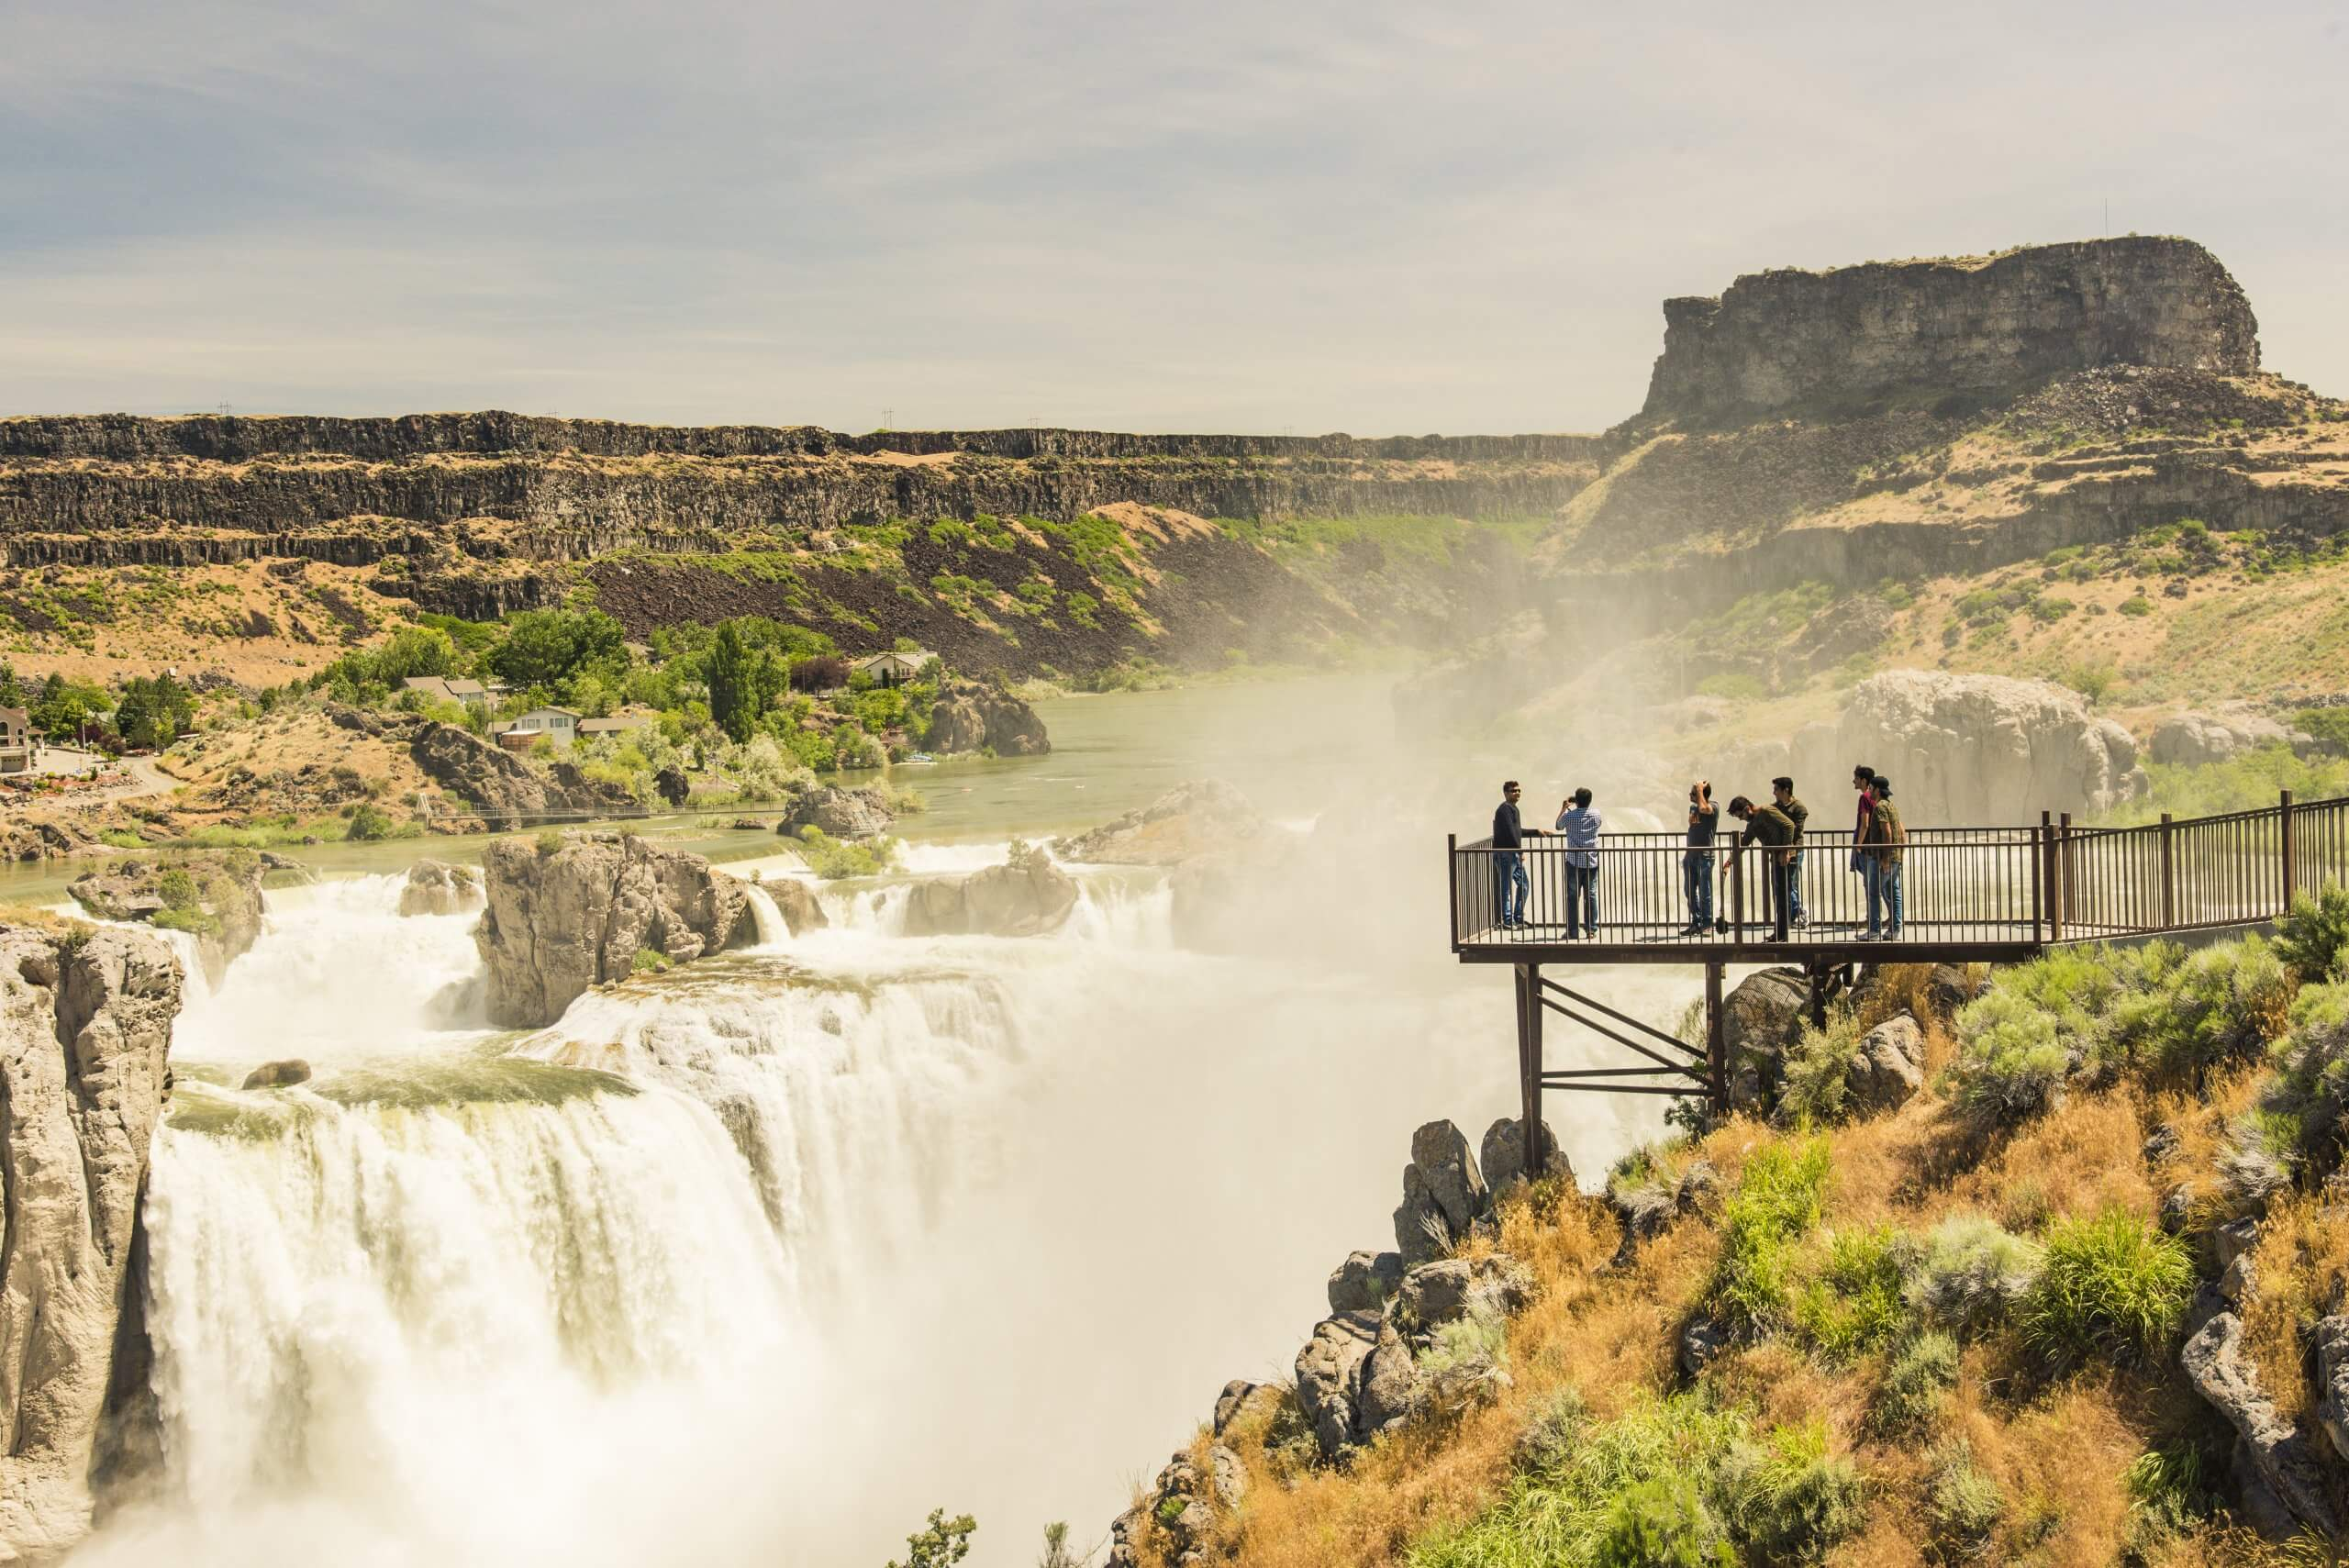 A view of Shoshone Falls from the viewing deck in the summer.